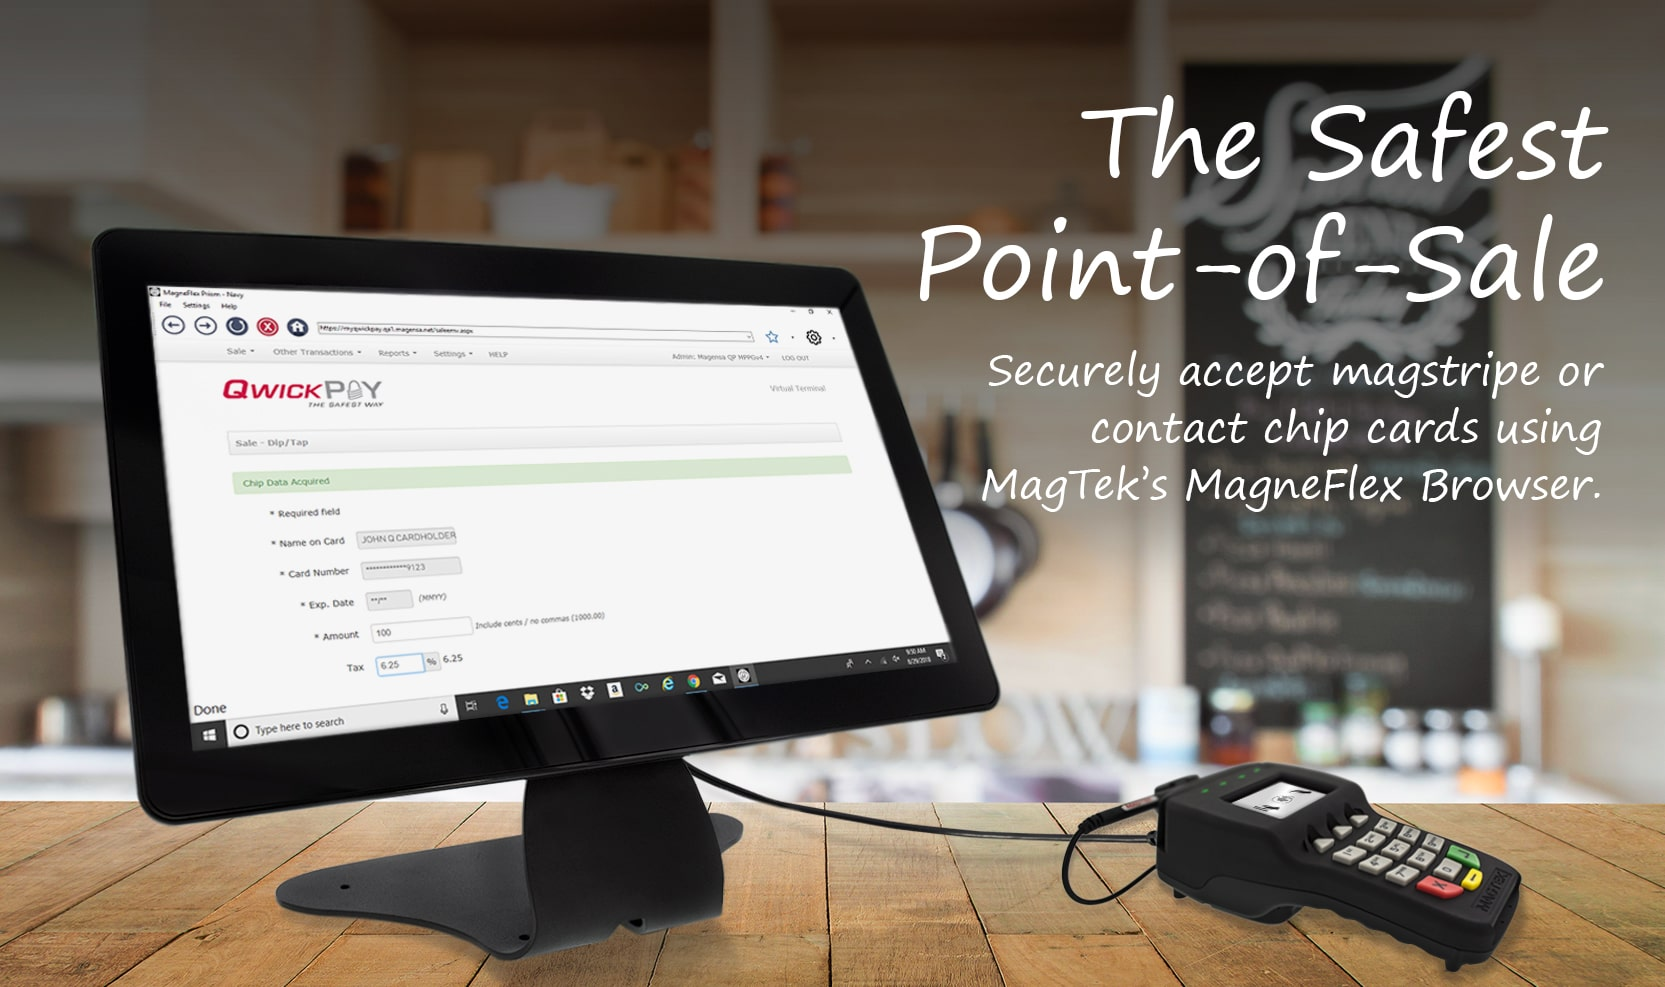 QwickPAY The Safest Point-of-Sale